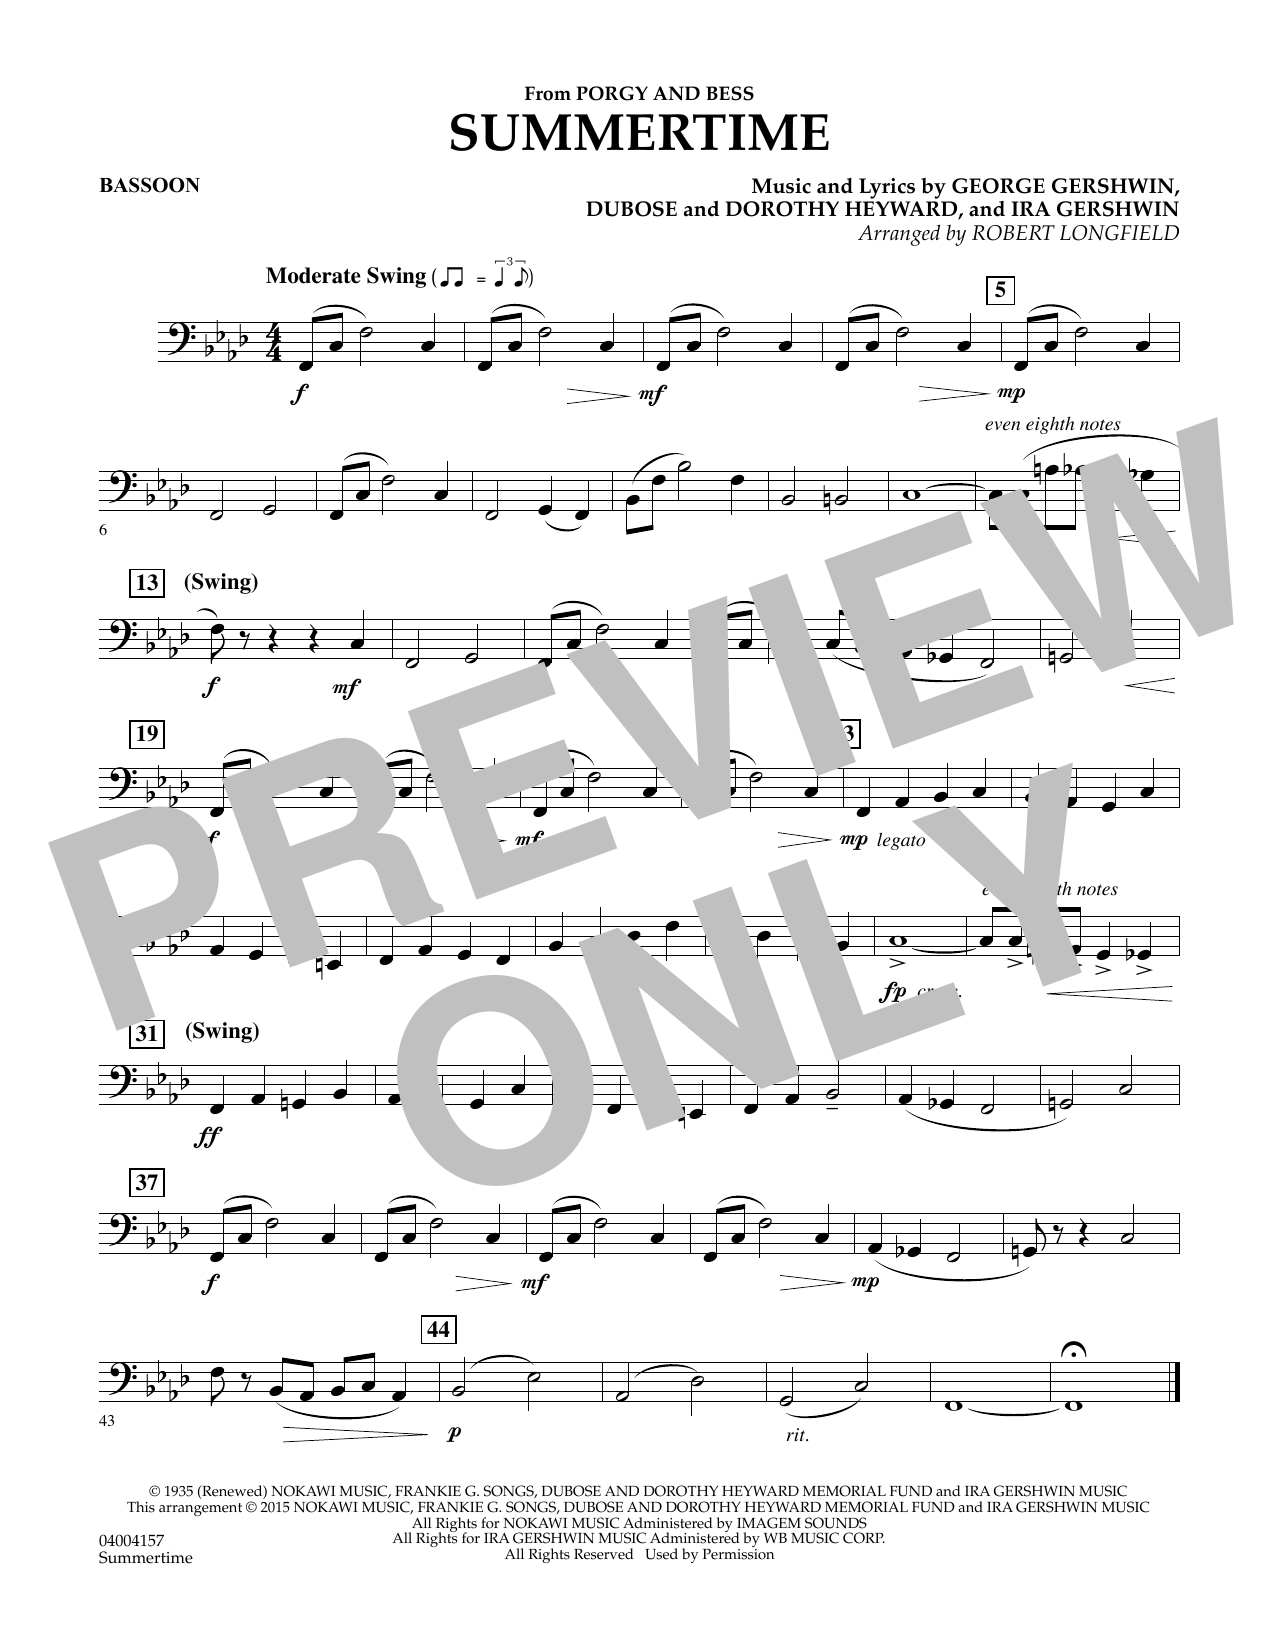 Summertime (from Porgy and Bess) - Bassoon (Concert Band)